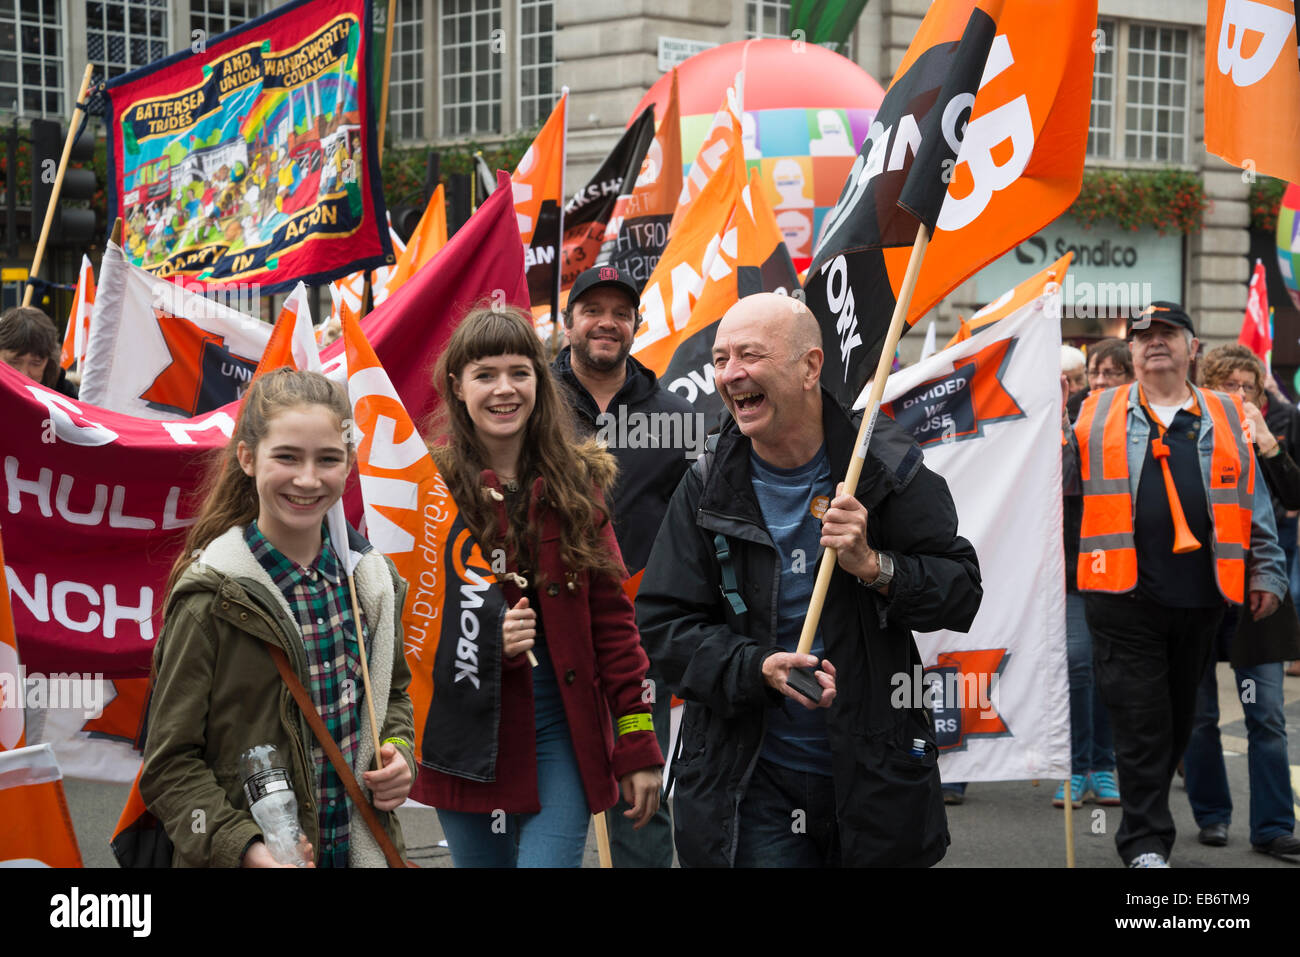 Britain Needs a Pay Rise march, London, 18 October 2014, UK - Stock Image